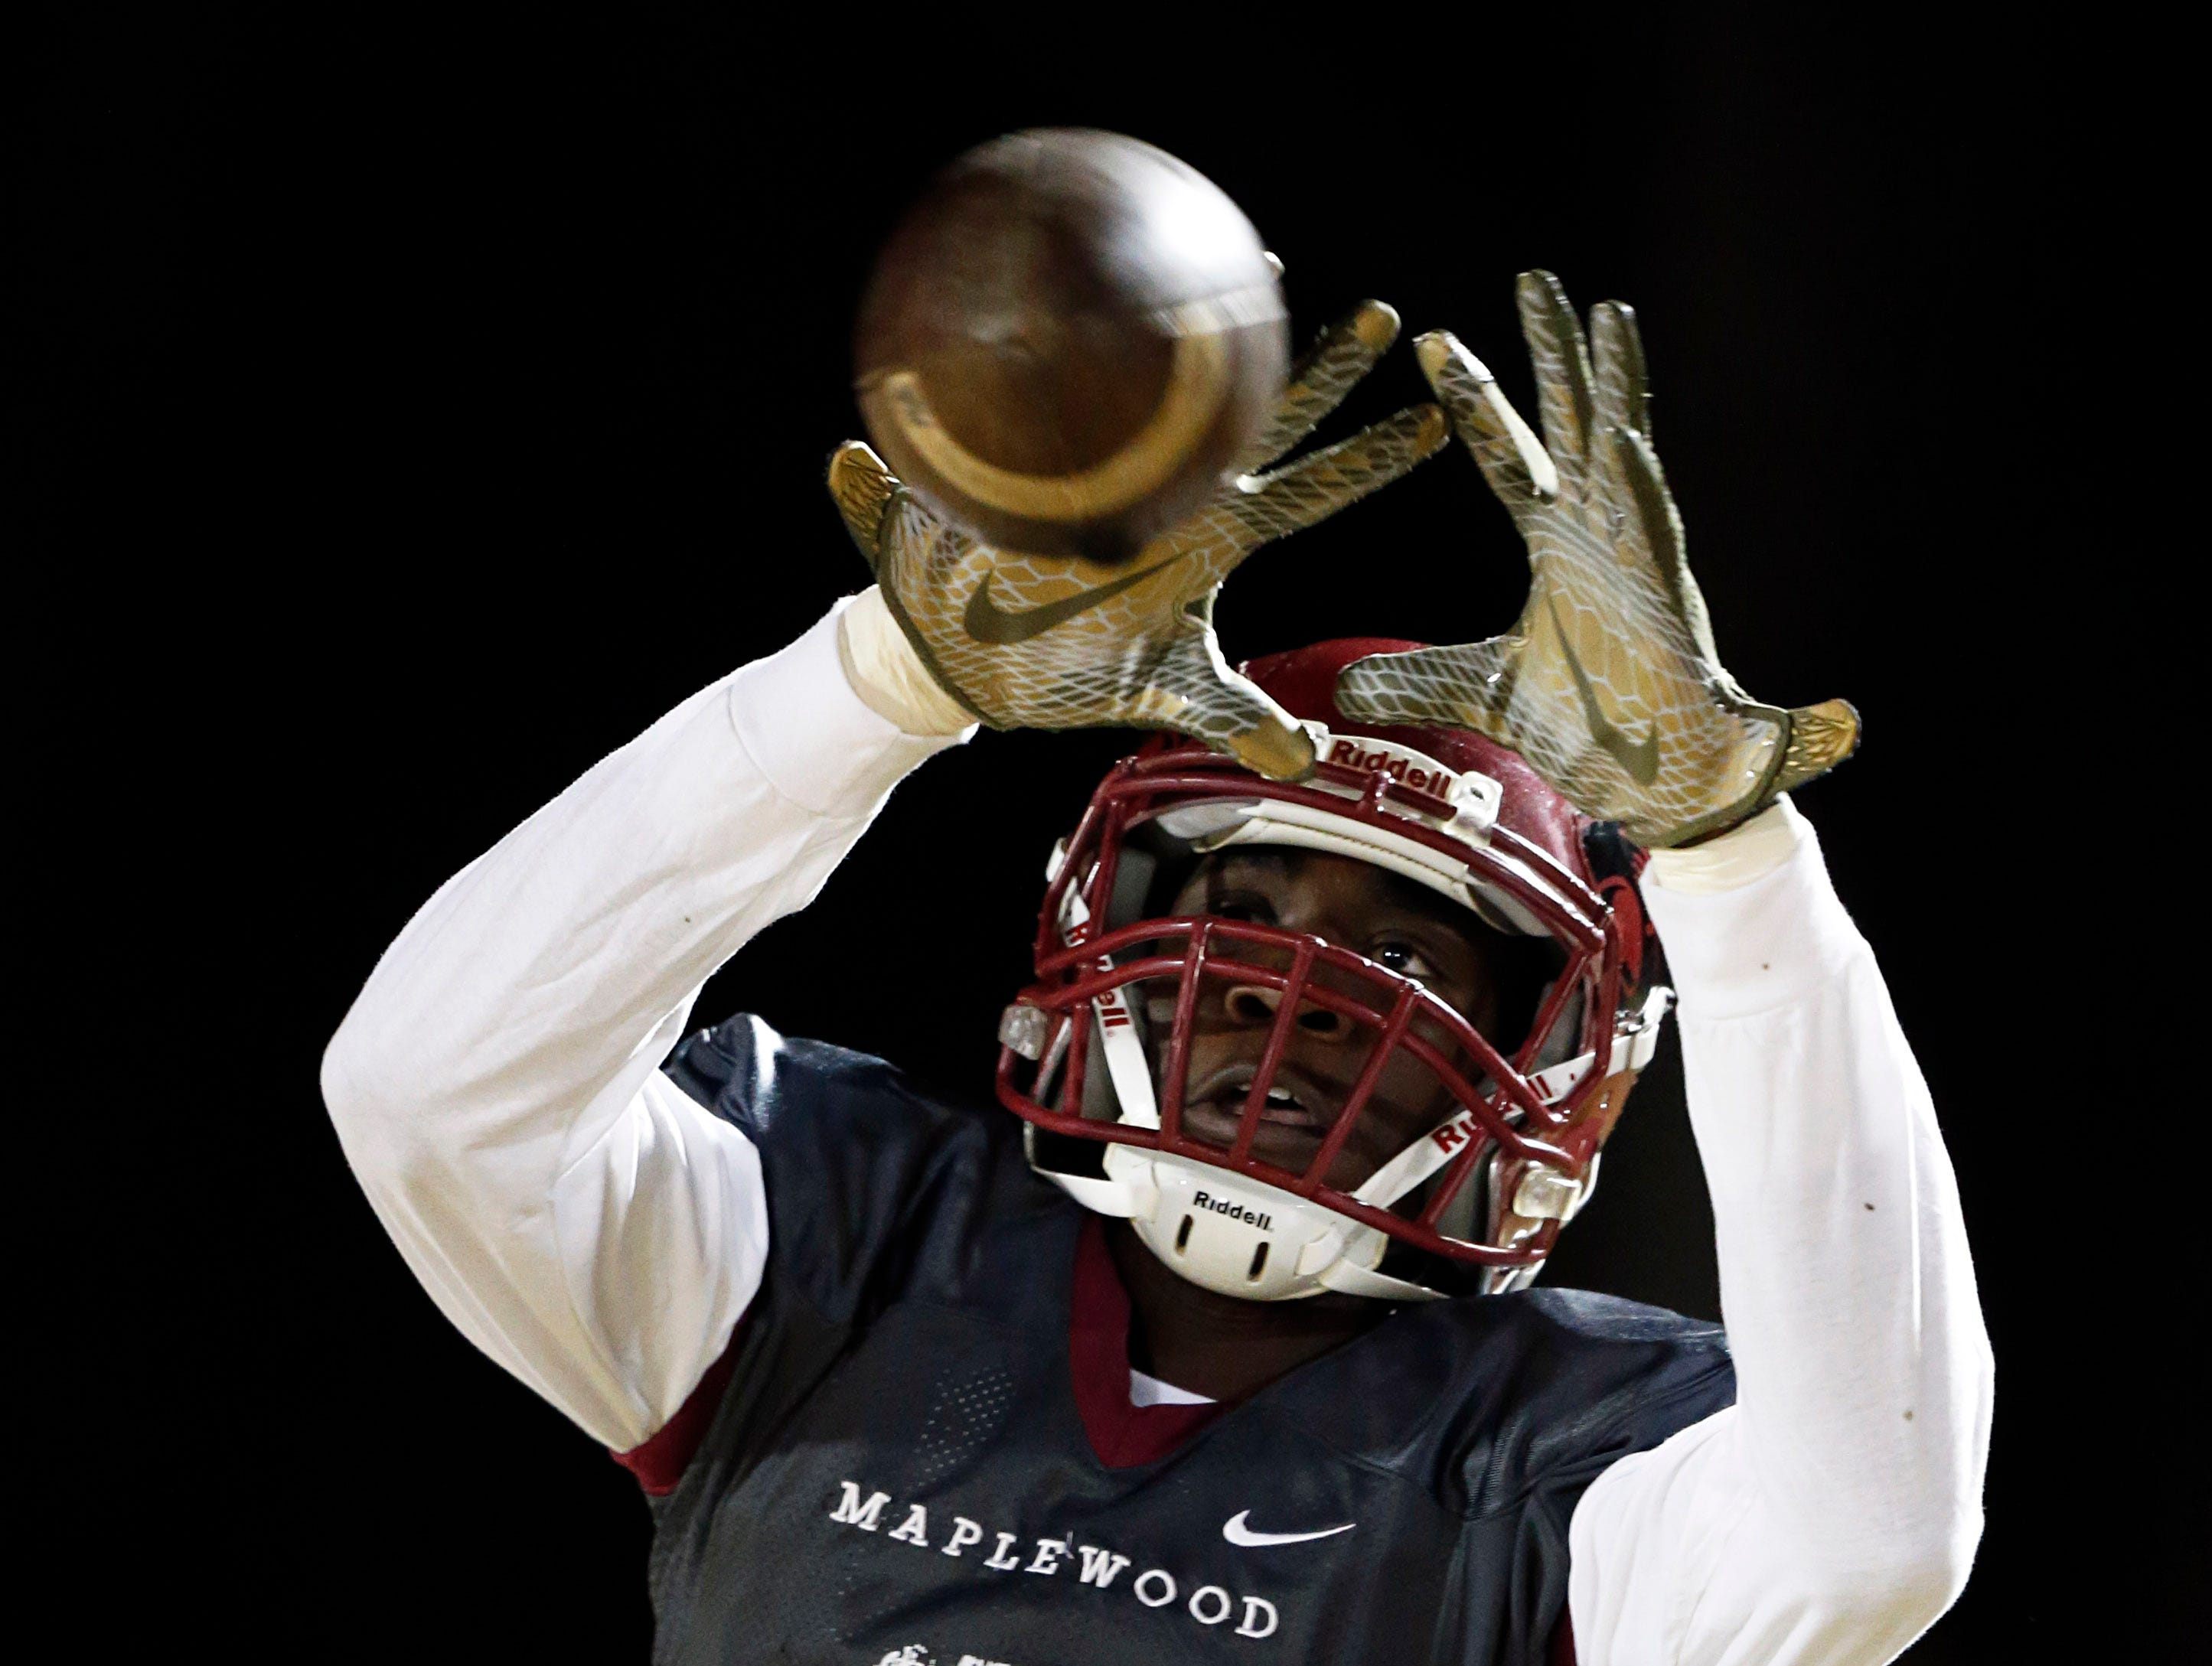 Maplewood's Kendrell Scurry make a catch during warmups before their game against Greeneville Friday, Nov. 23, 2018, in Nashville, TN.